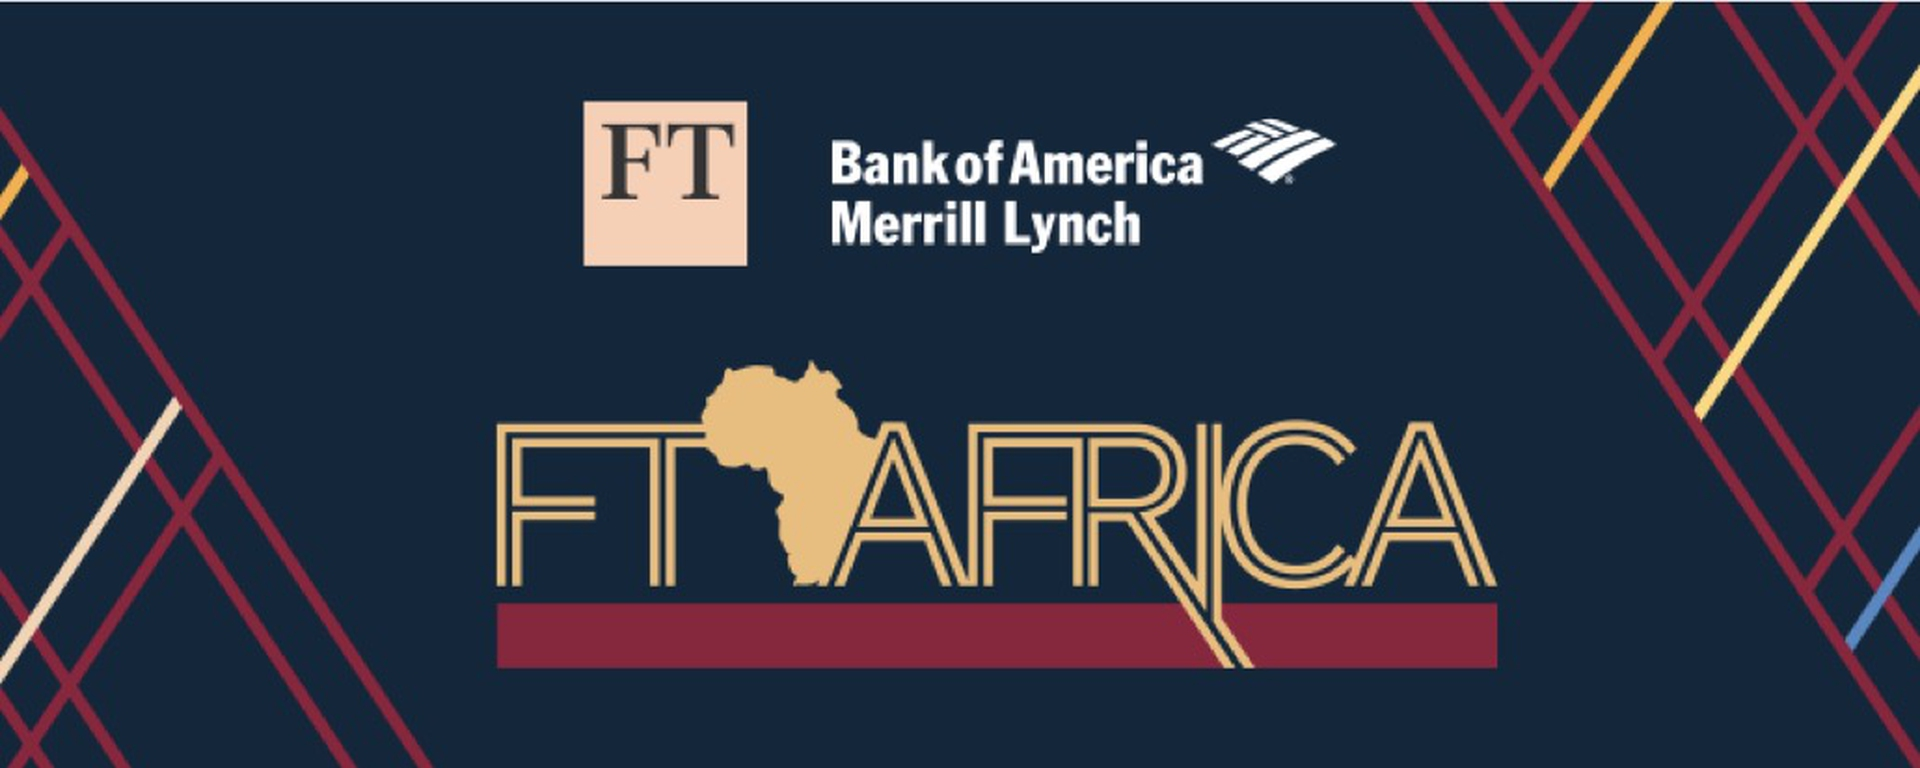 Financial Times - FT Africa Summit 2019 Movemeback African event cover image